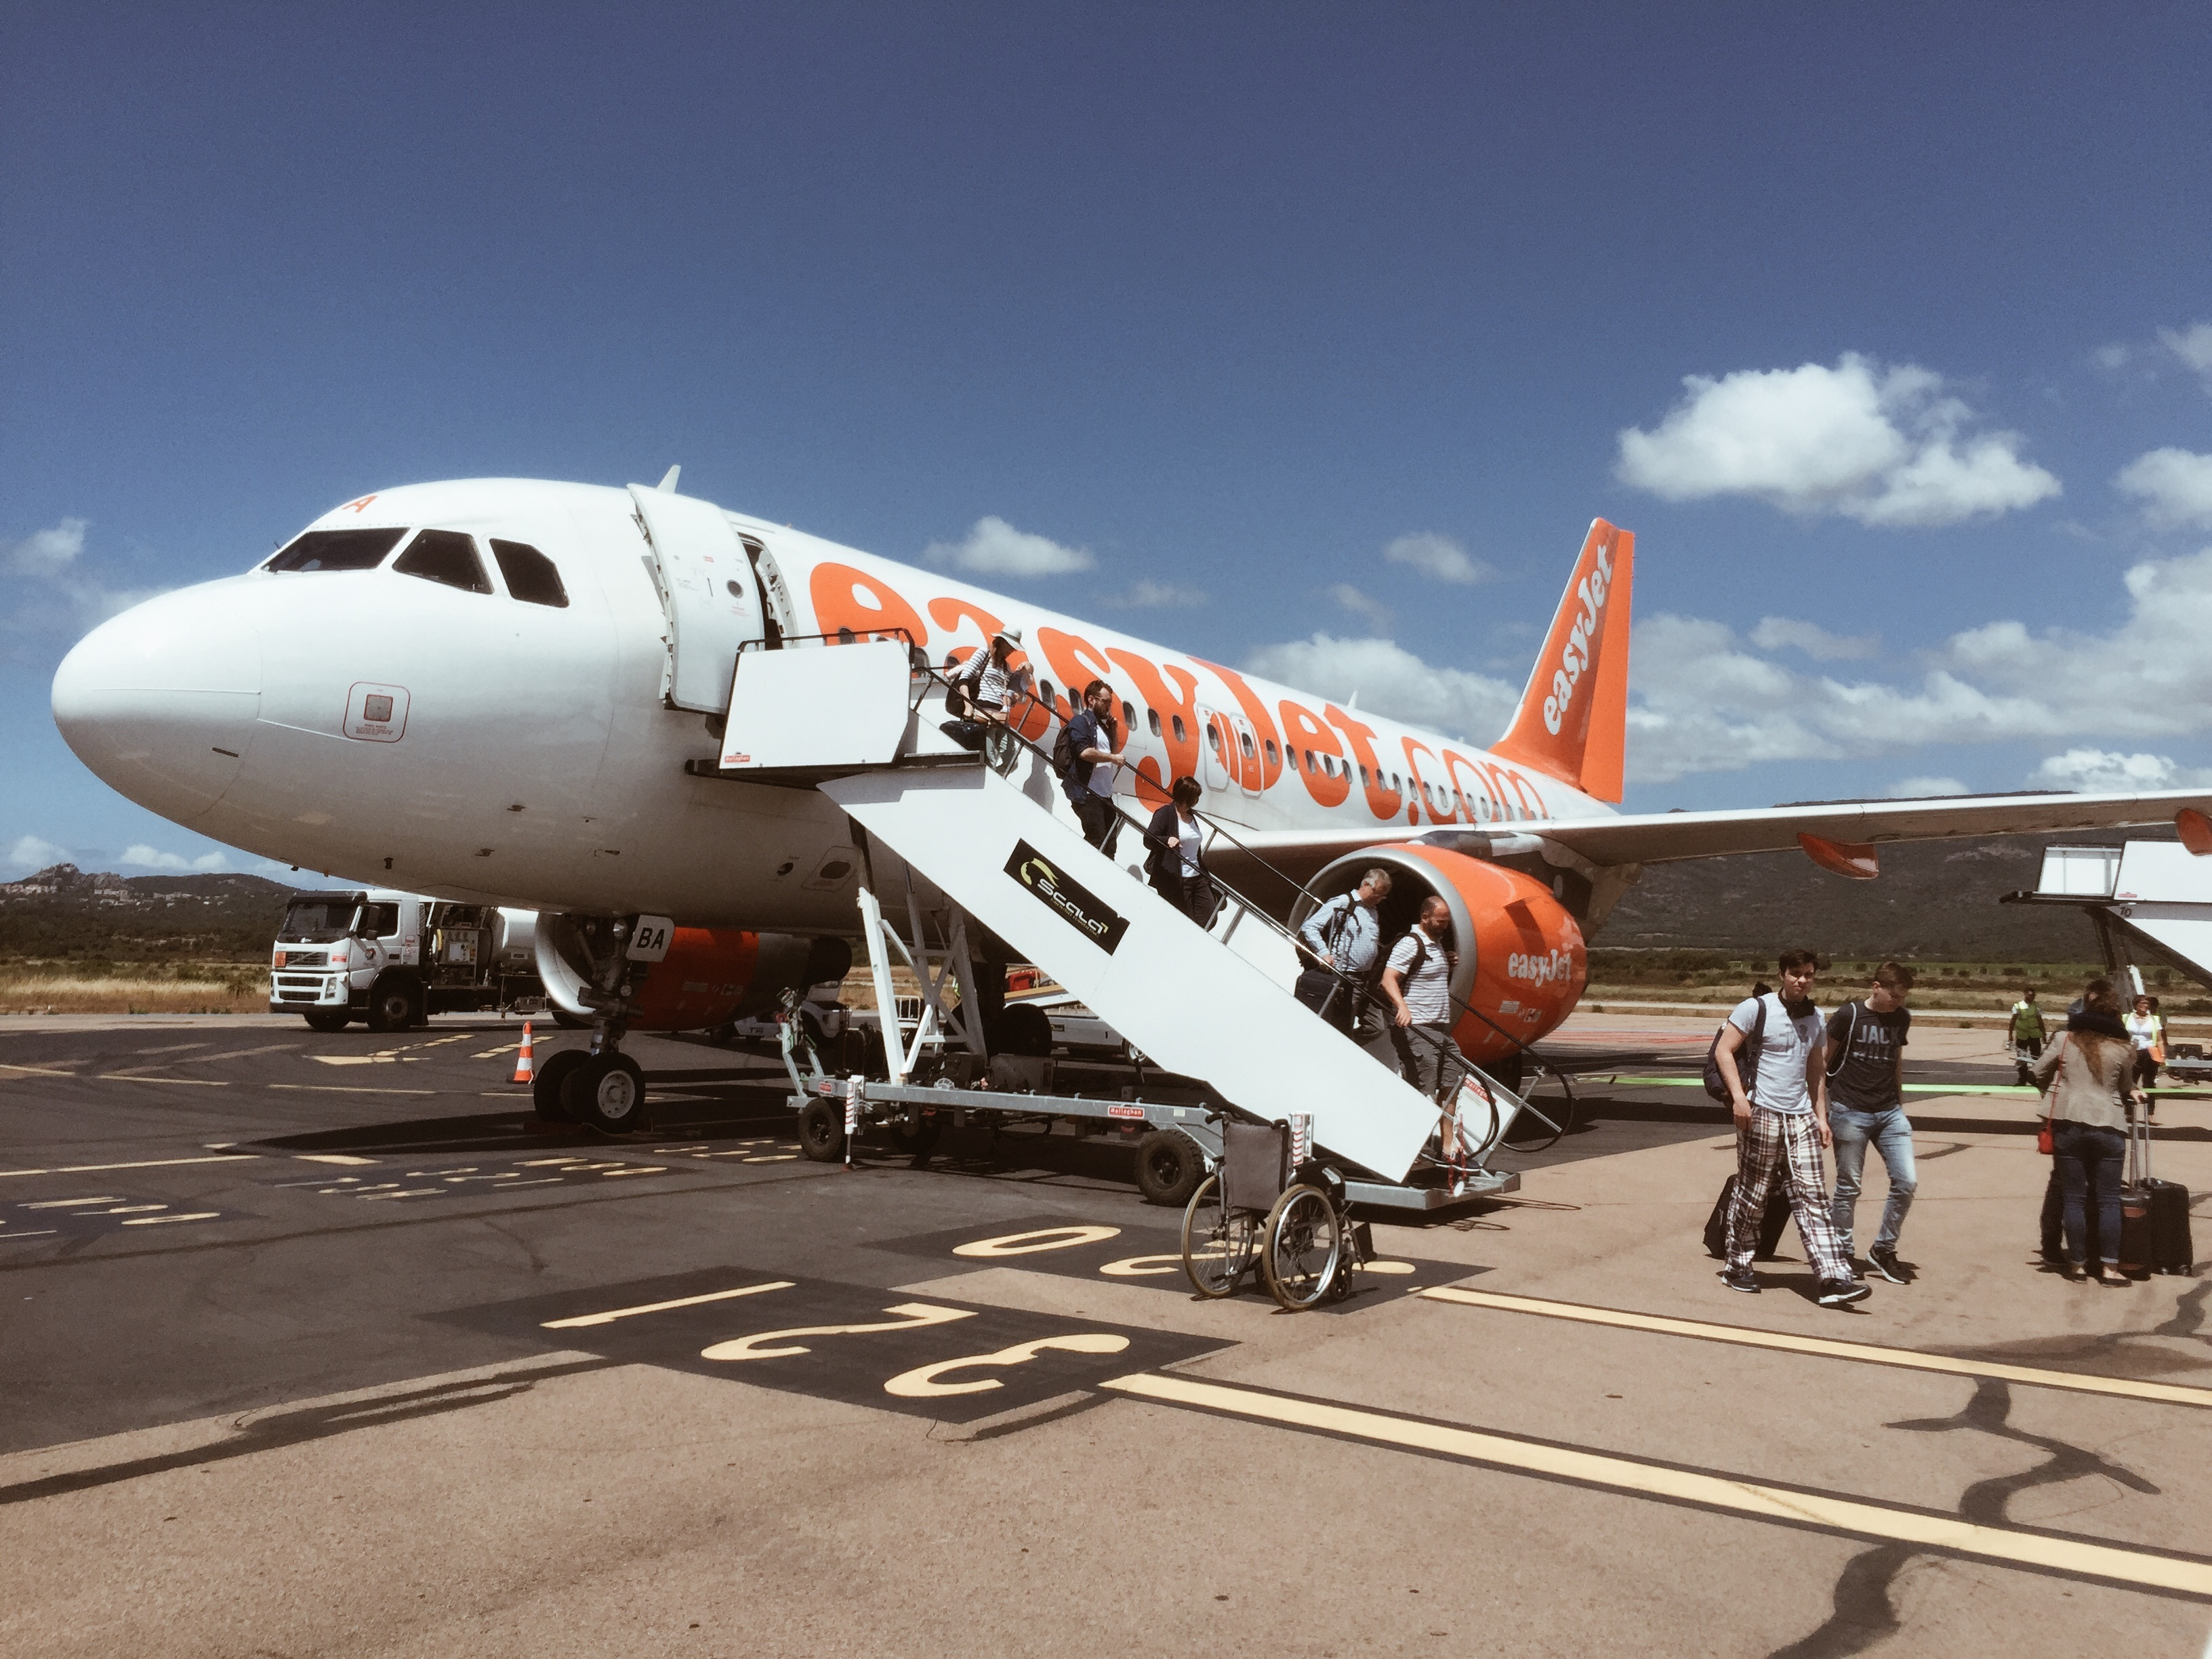 Easyjet flight review